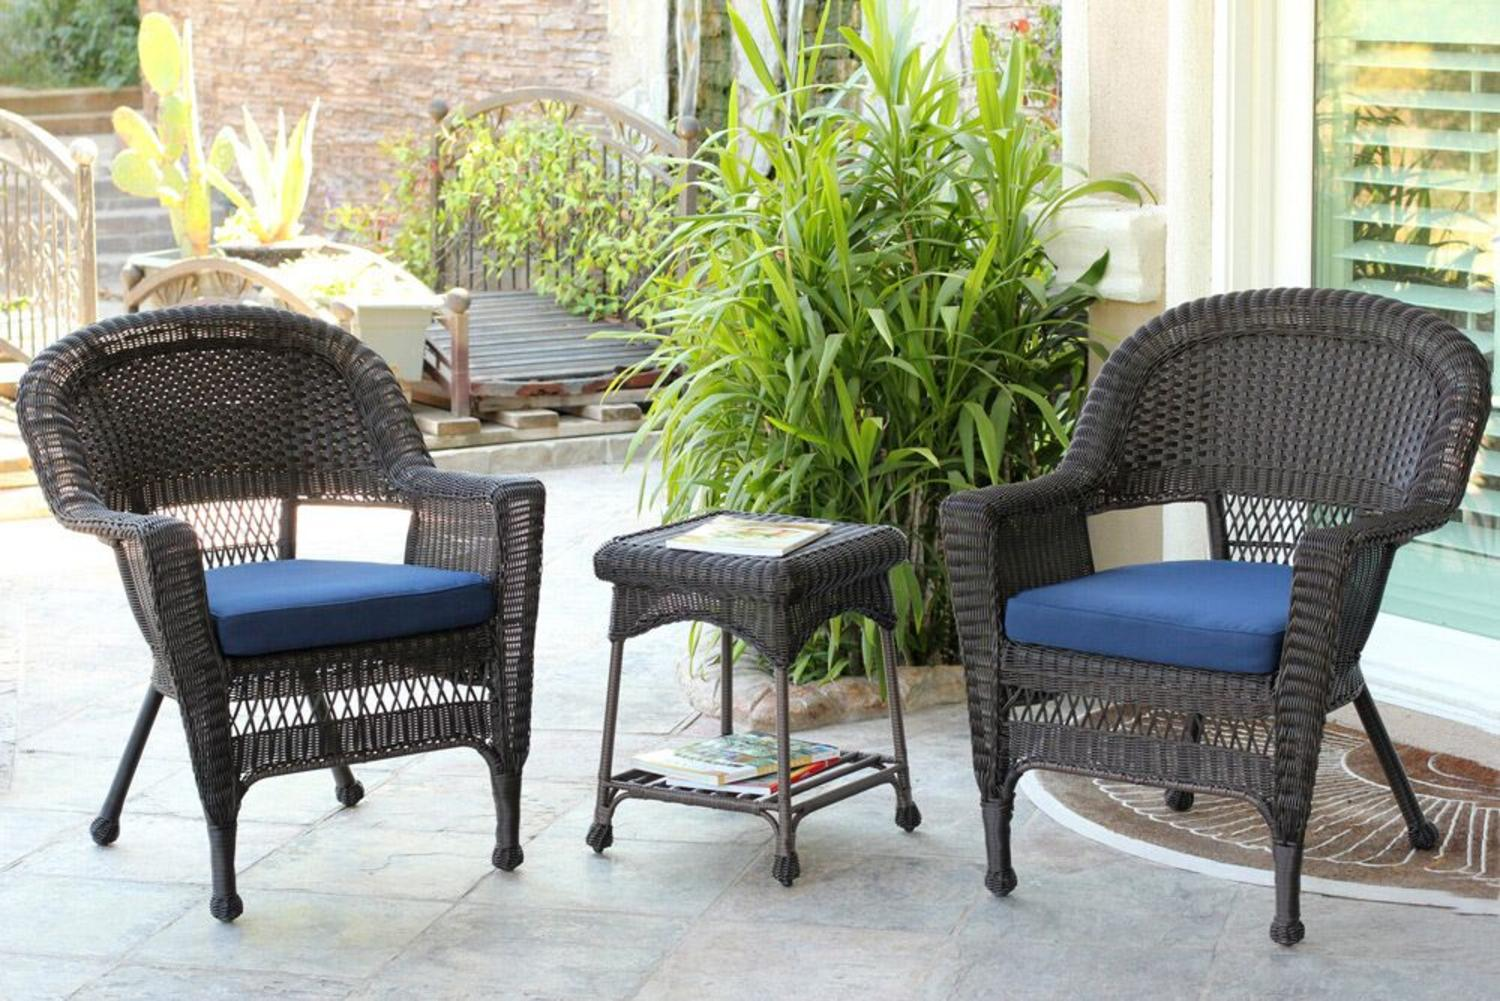 Garden Furniture Table And Chairs wicker outdoor chairs - creditrestore